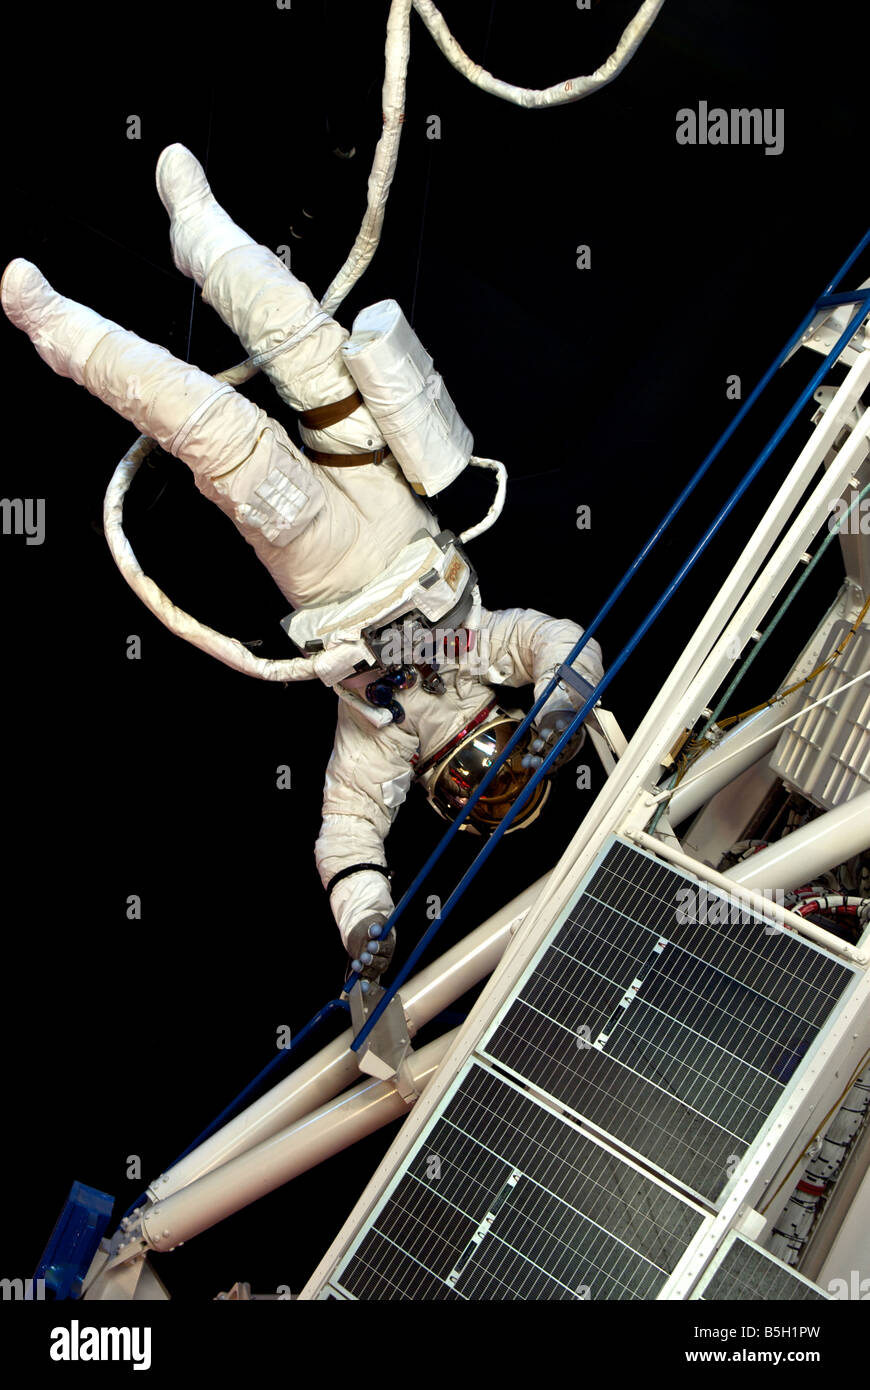 Mock up of astronaut in spacesuit on spacewalk performing maintenance on space station satellite at Houston Space - Stock Image